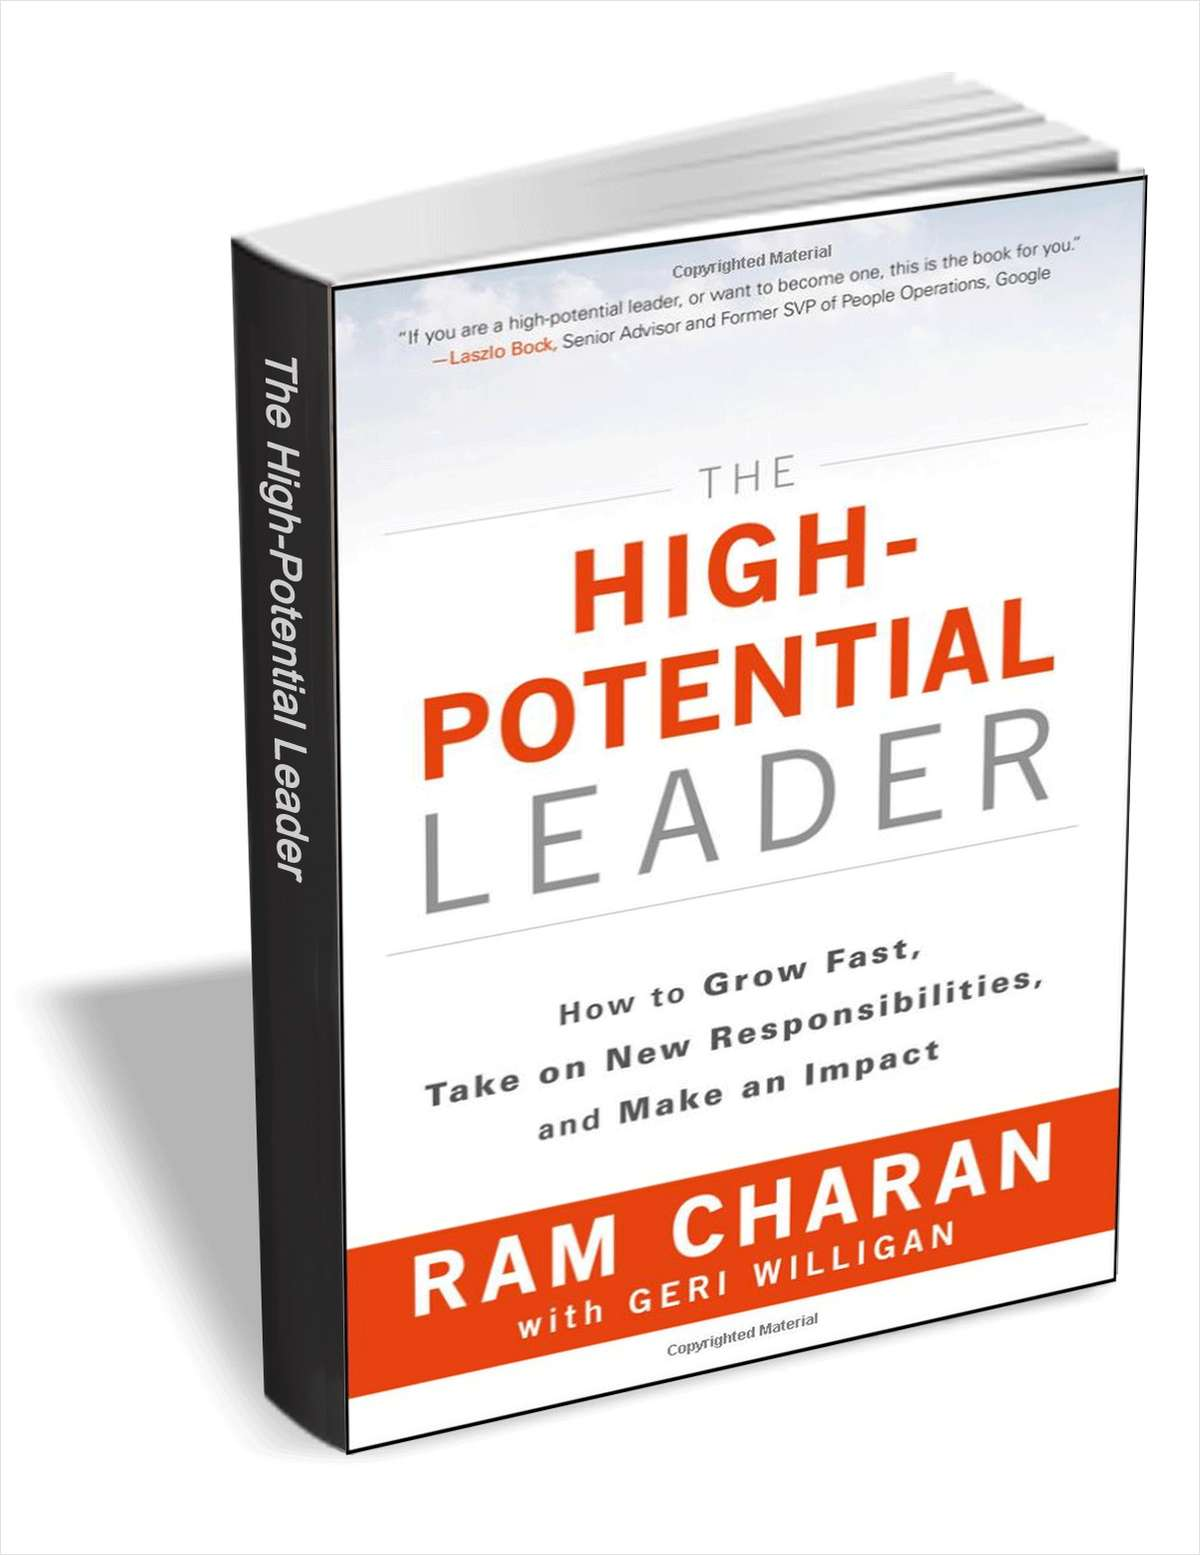 The High-Potential Leader - How to Grow Fast, Take on New Responsibilities, and Make an Impact ($20 Value) FREE For a Limited Time